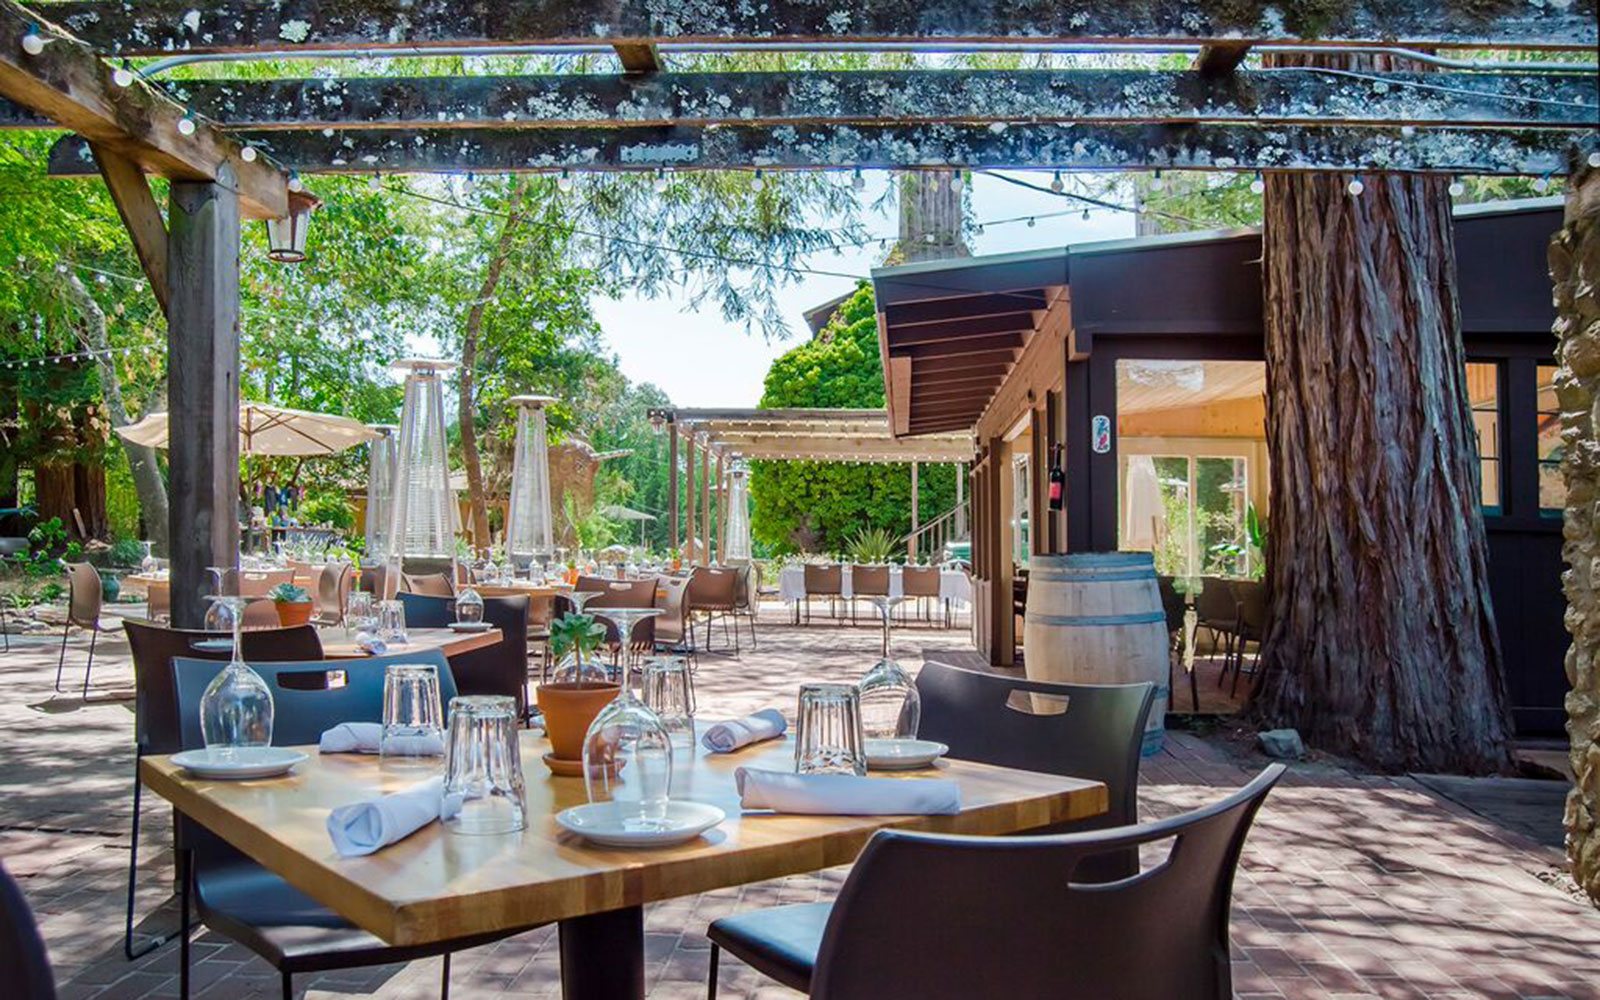 Ten of America's Best Outdoor Dining Spots, According to OpenTable: Corks at Russian River Vineyards in Forestville, California